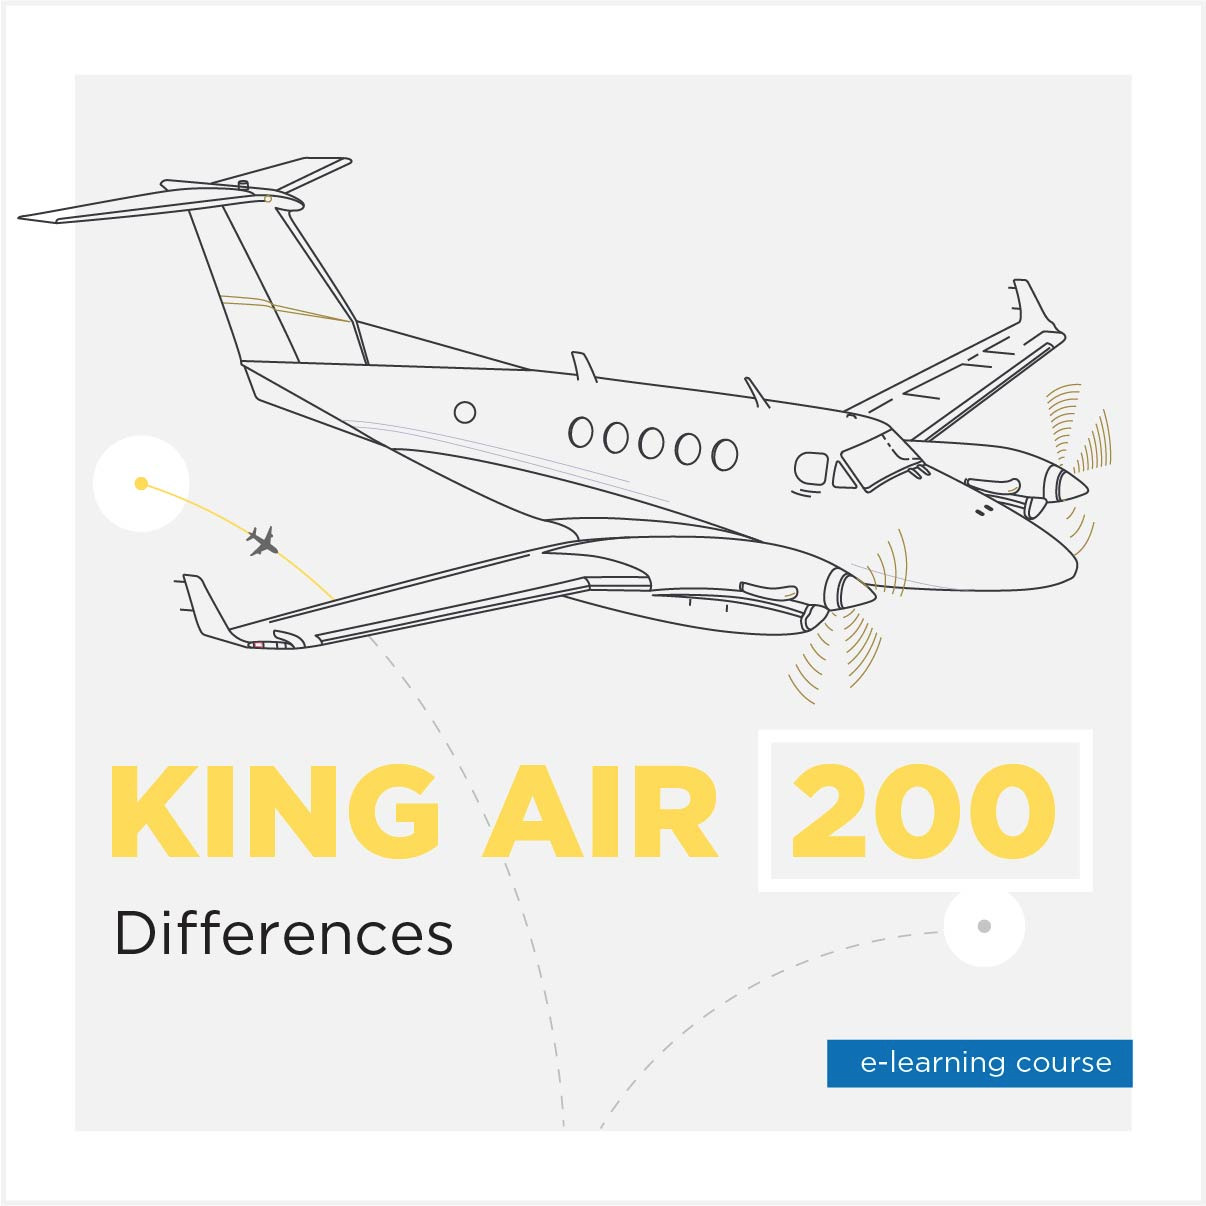 King Air 200 Differences